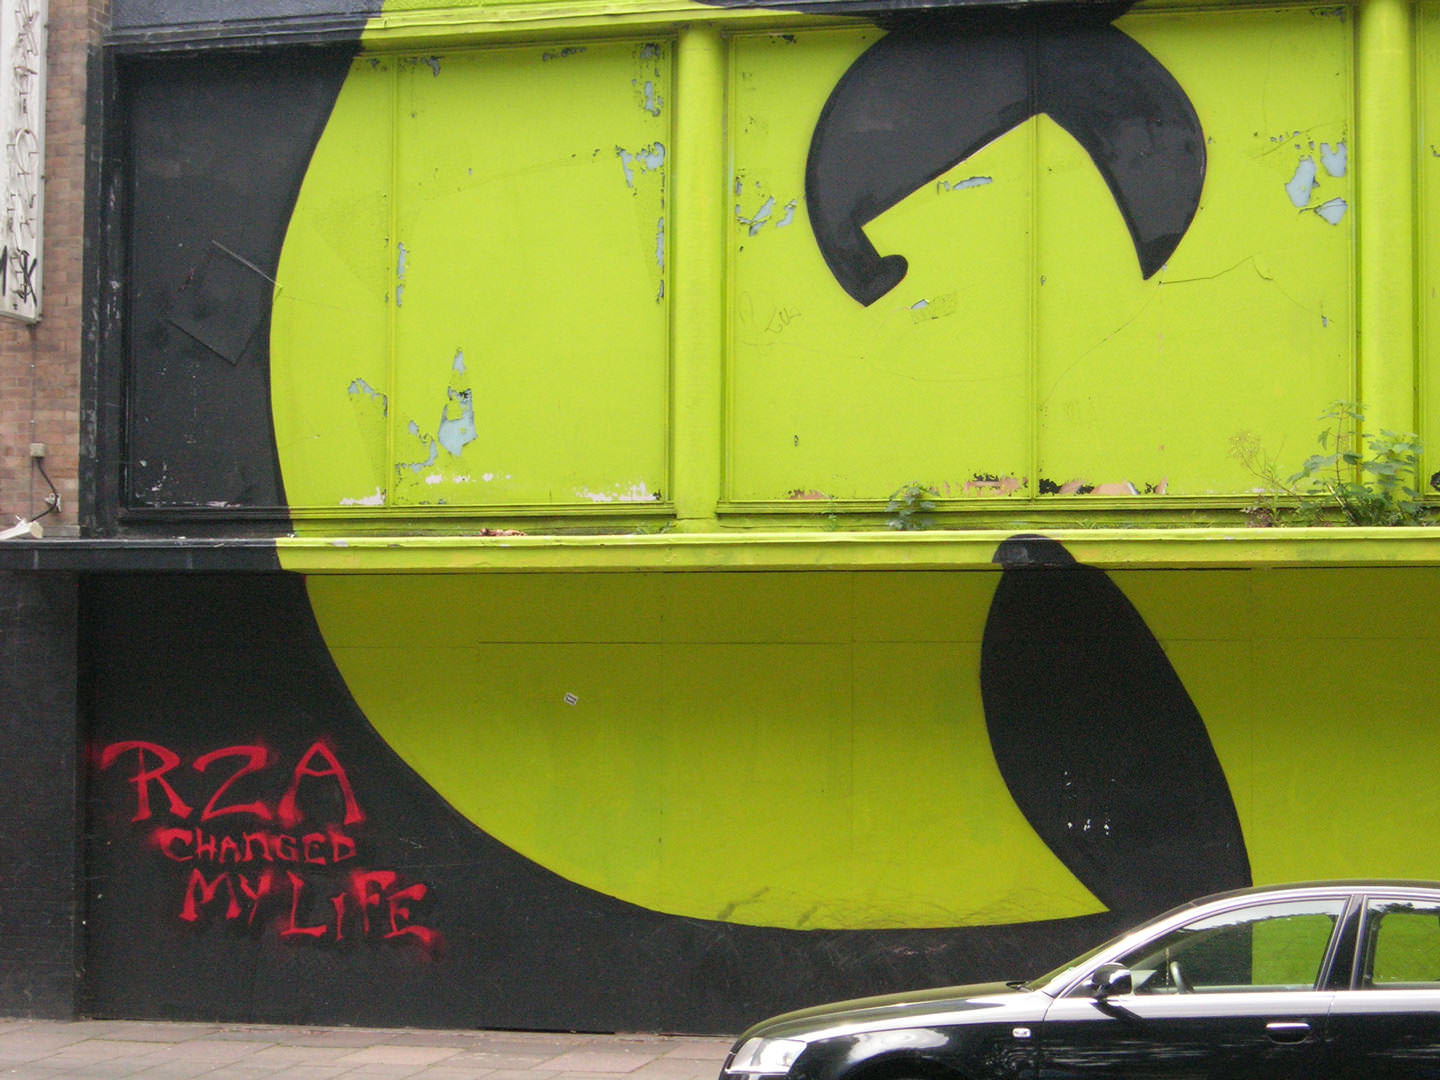 A photo of the Wu Tang Clan logo graffitied on a wall in Brighton. Next to is written: 'RZA changed my life'.